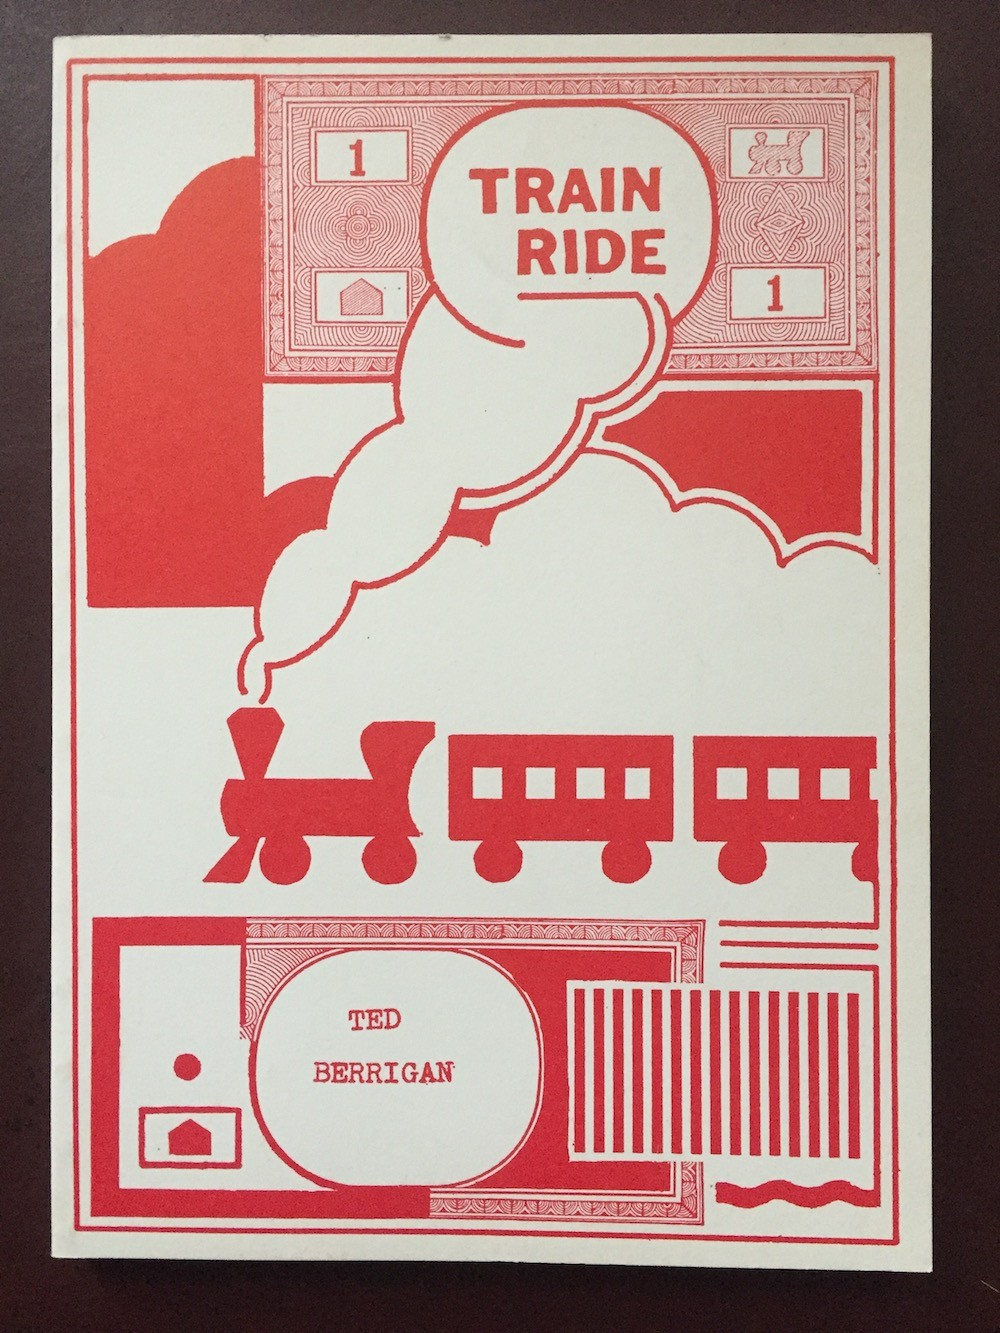 Cover for Train Ride by Ted Berrigan